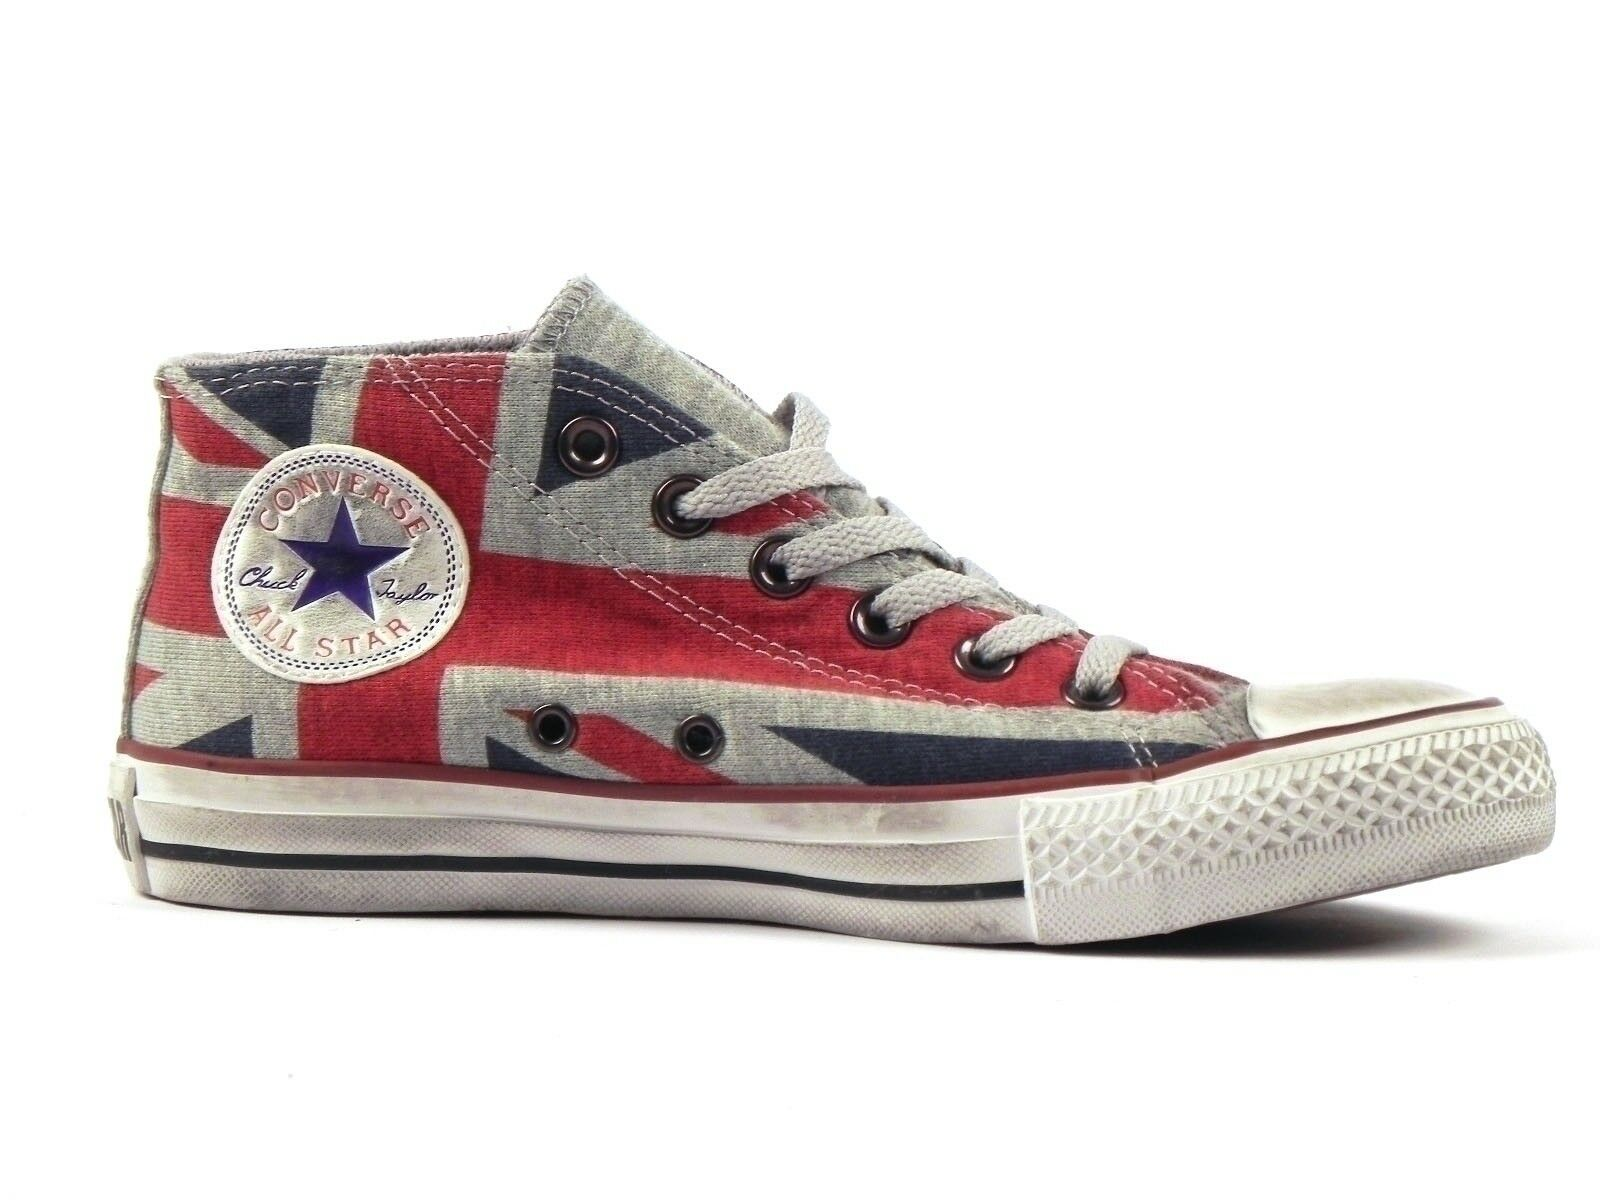 schuhe UNISEX CONVERSE INVERNO 135501C  CT CLEAR MID Blau/ROT/WEISS